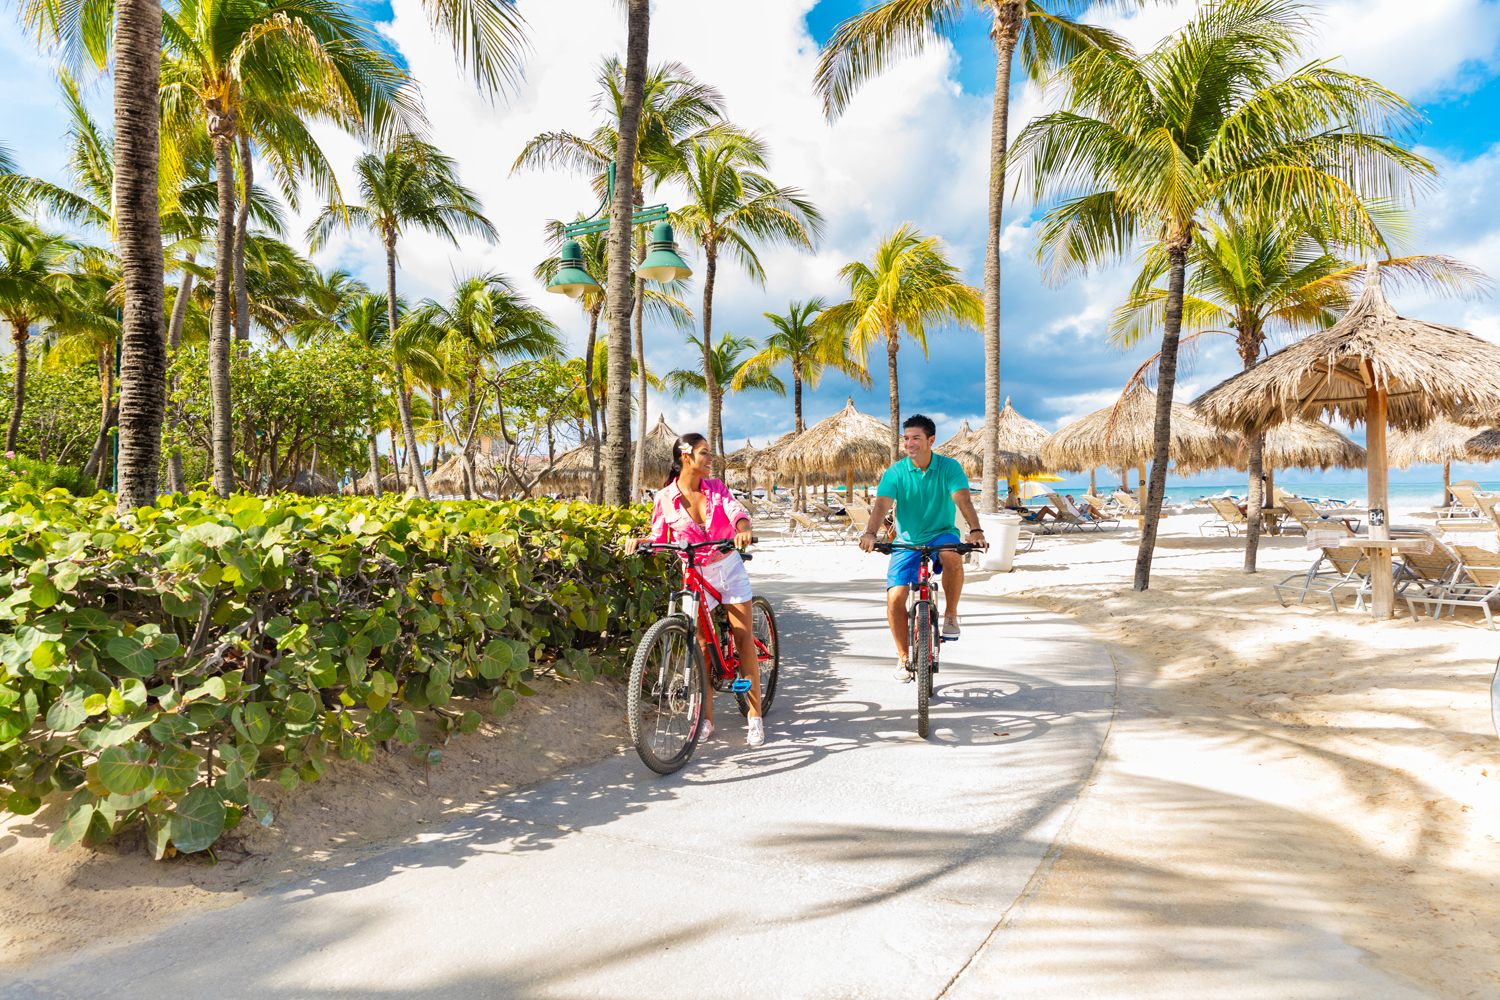 The Hilton Aruba offers complimentary bike rentals and tours.